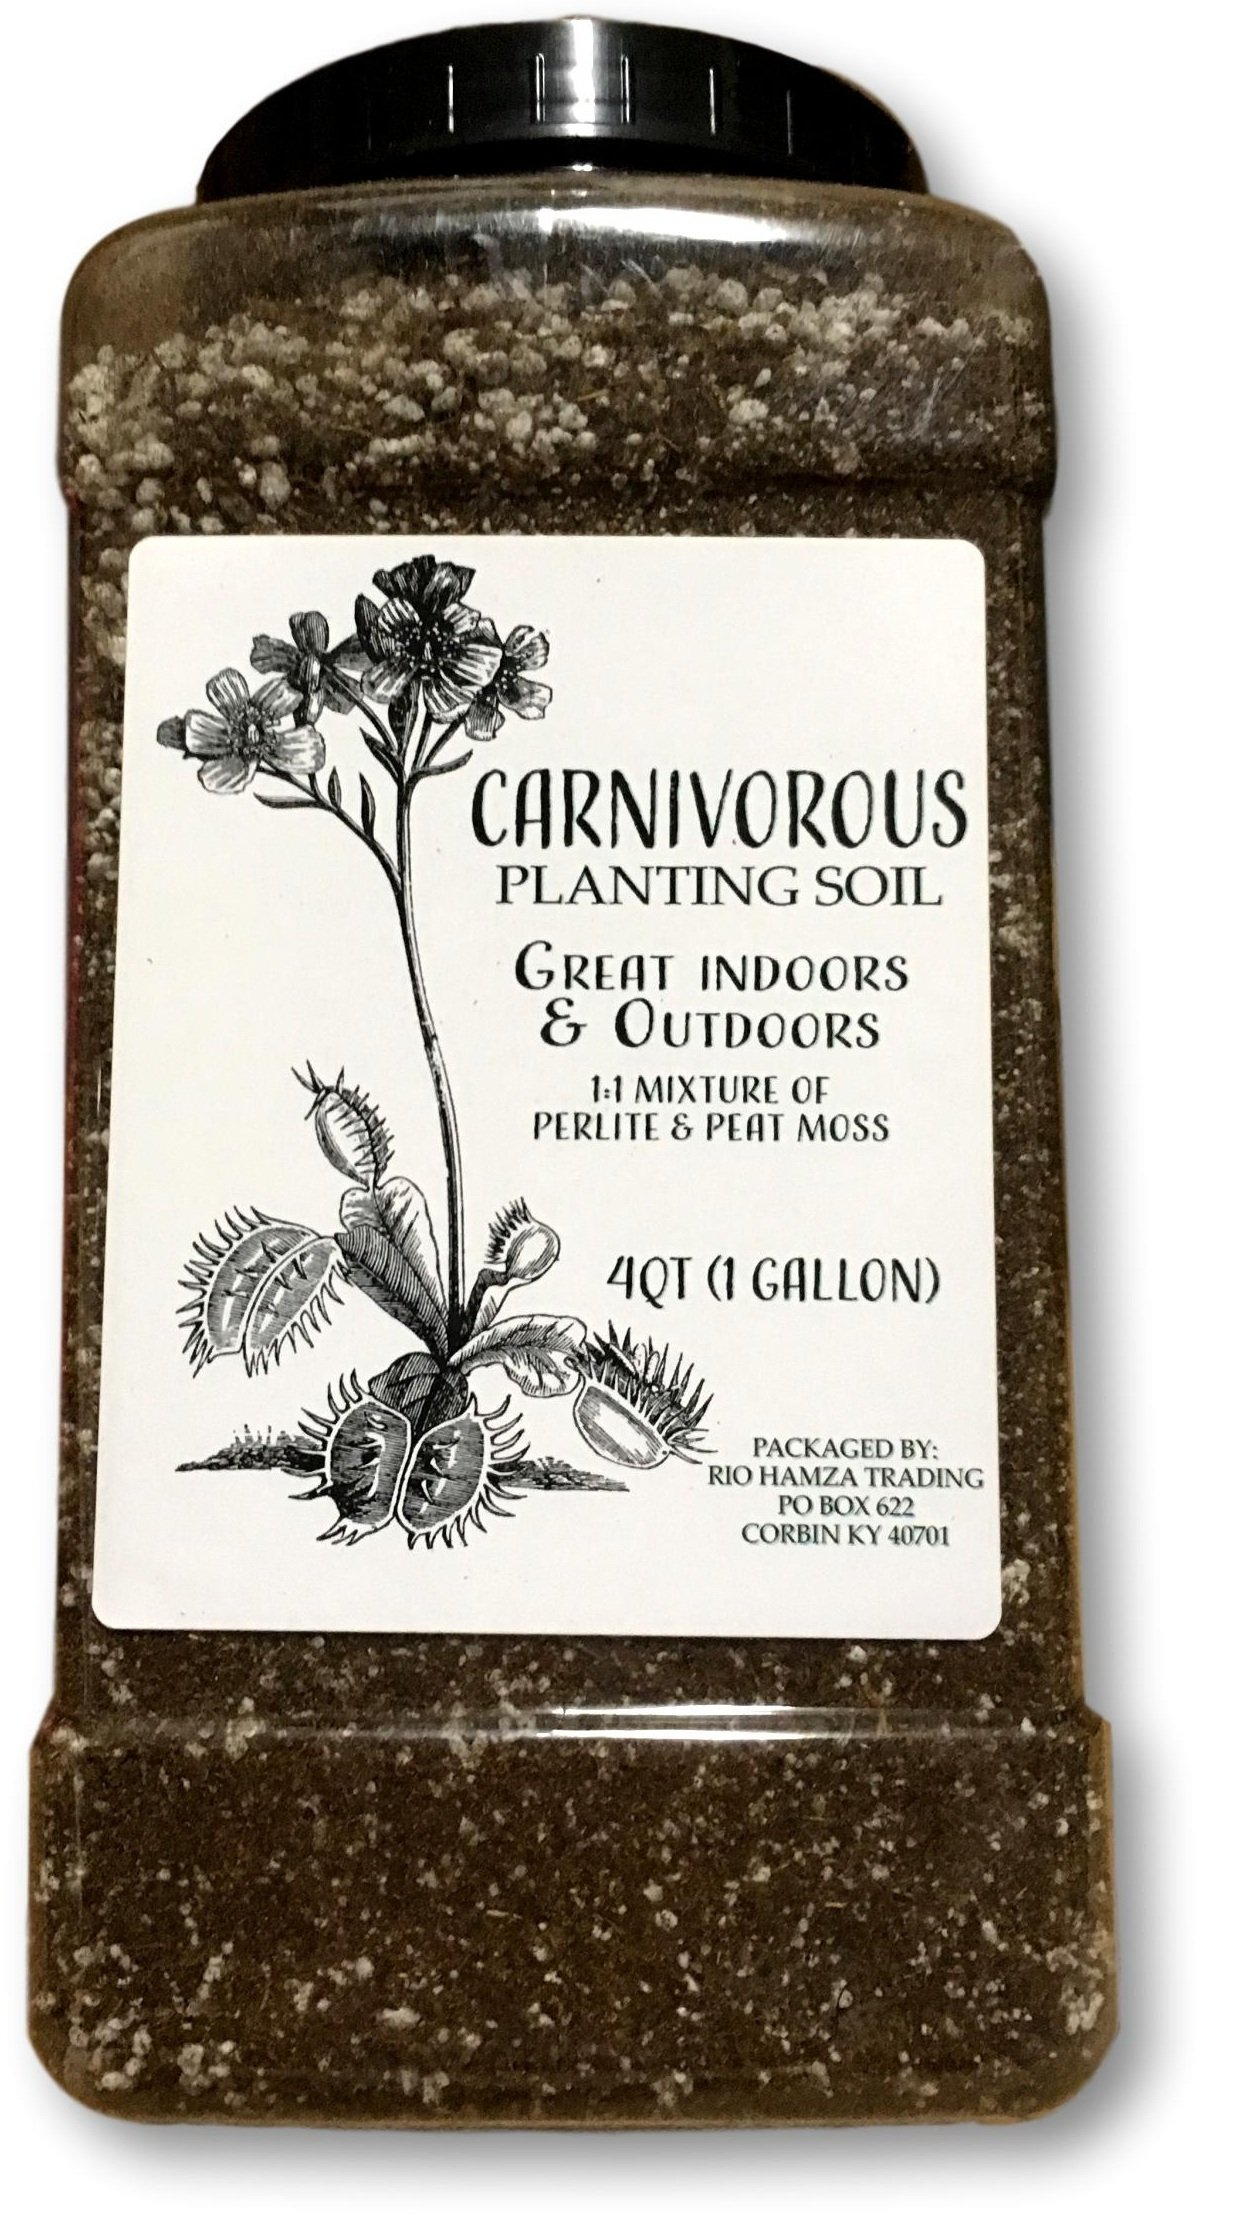 All Natural Carnivorous Plant Soil, 1 Gallon (4qt) of Soil, Reusable Plastic Storage Container, Great Soil for Venus Fly Traps, Sundews, and Pitcher Plants by Rio Hamza Trading